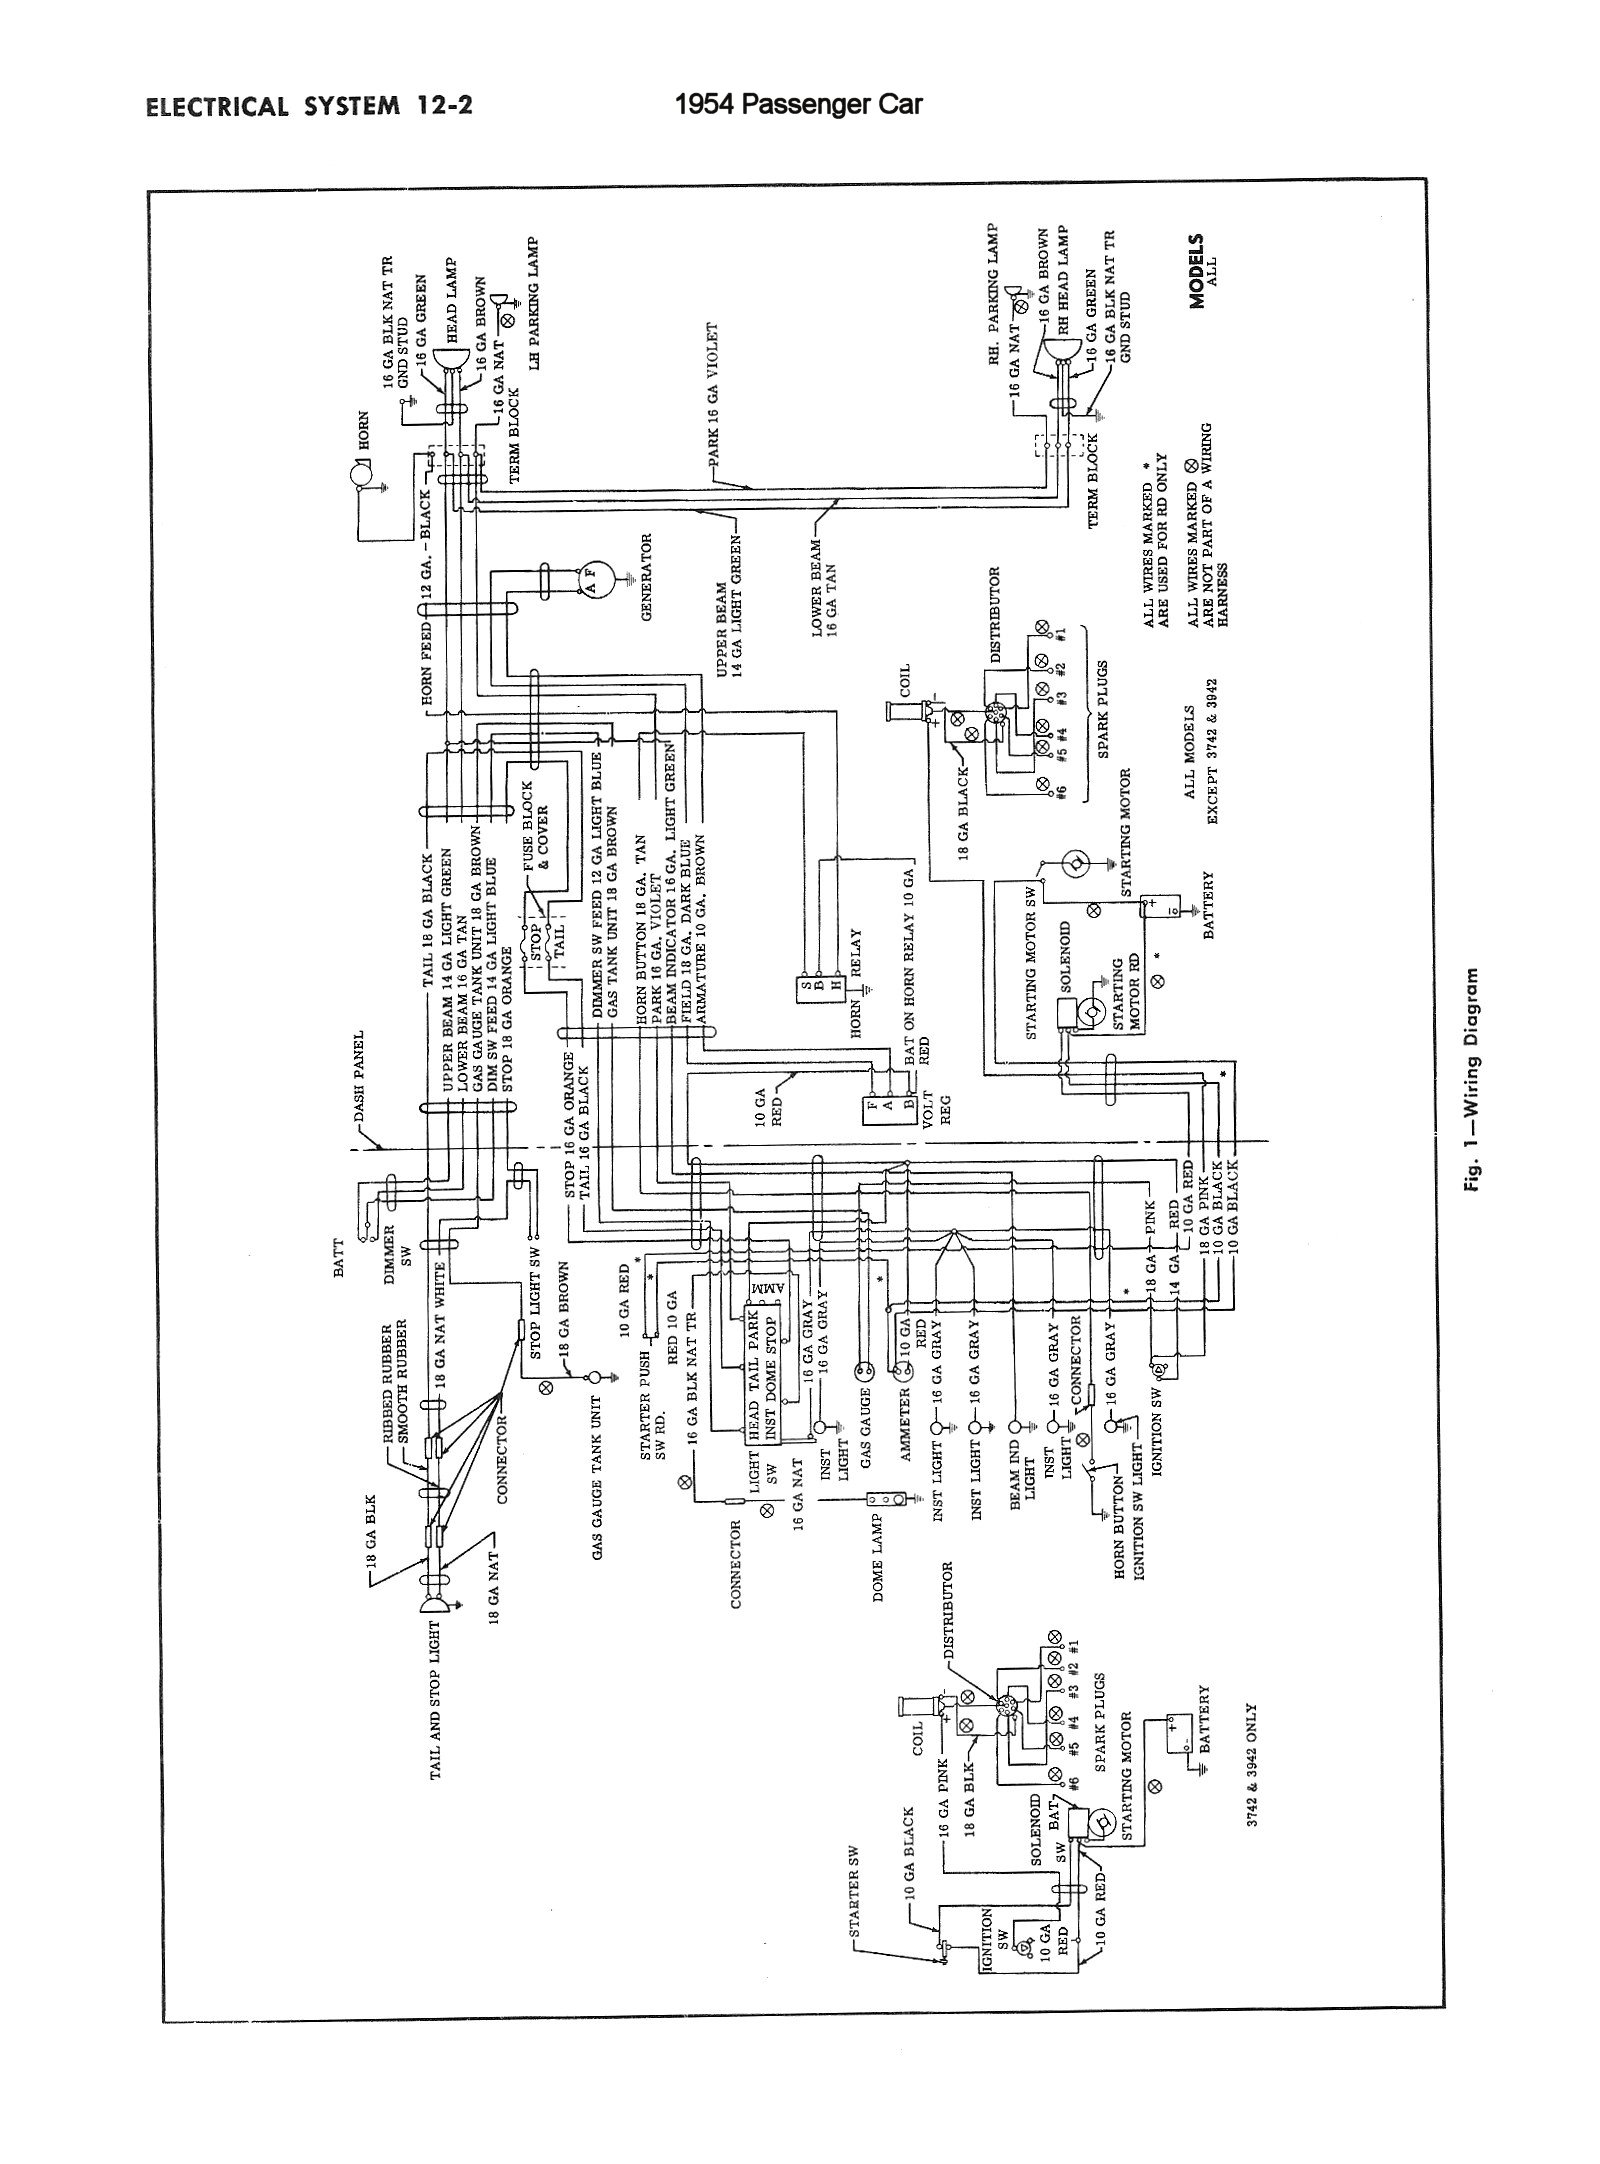 1950 Chevy Truck Horn Wiring Diagram further Ford 2002 F 250 Front End Diagram moreover 1960 Ford F100 Wiring Diagram Switch Headlight furthermore Ford Crown Victoria Engine Wiring Harness together with Easy Simple Routing Starter Relay Wiring Diagram. on 1950 ford car radio